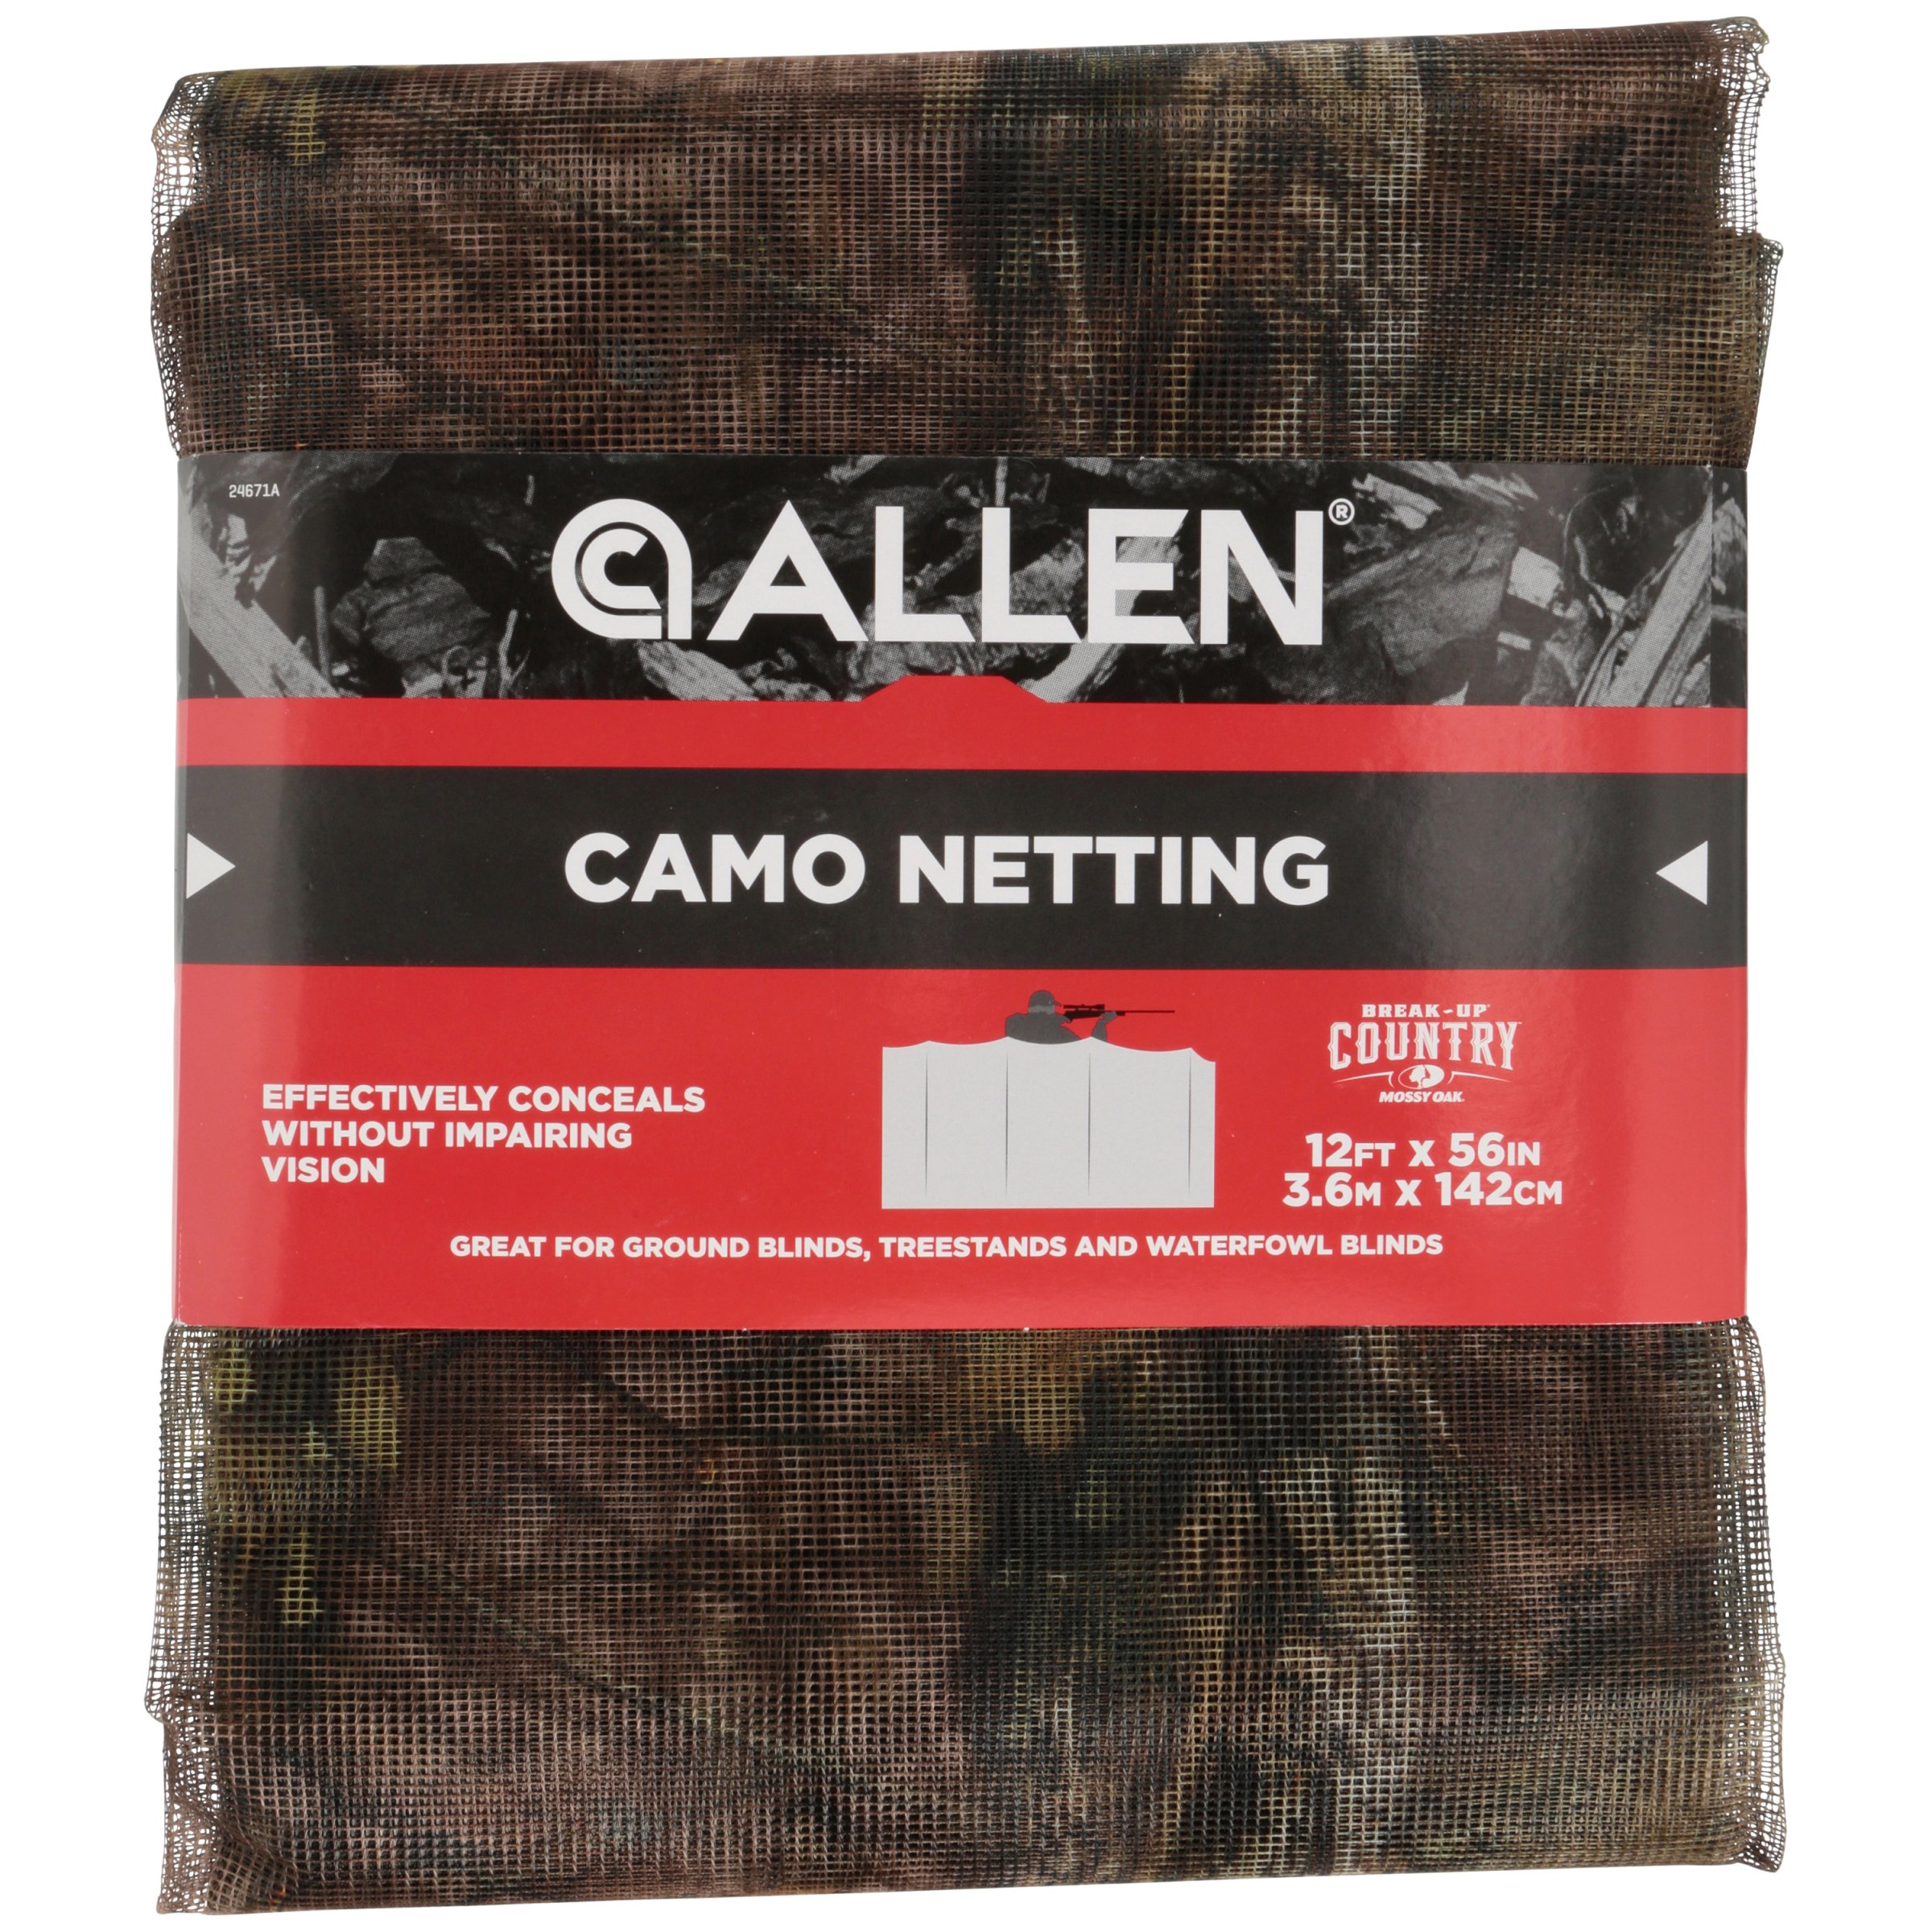 Camo Netting For Blind Making by Allen Company - Walmart.com